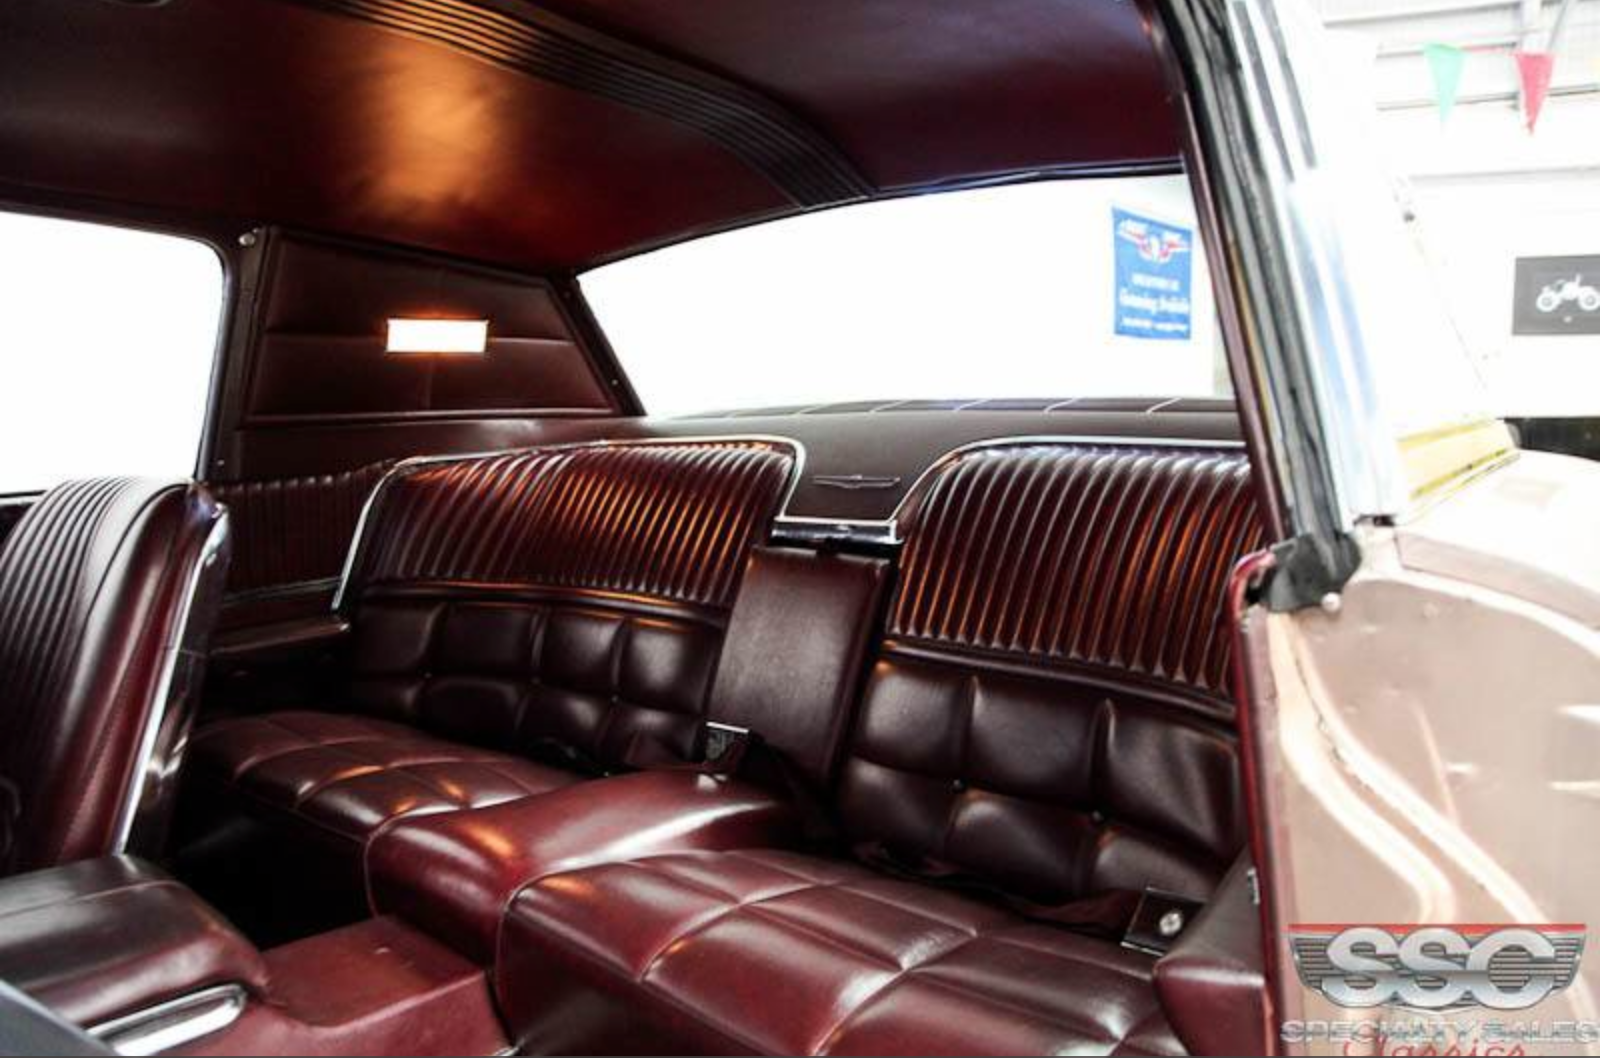 1966 Thunderbird I Typically Don T Like Burgundy Interior Or The